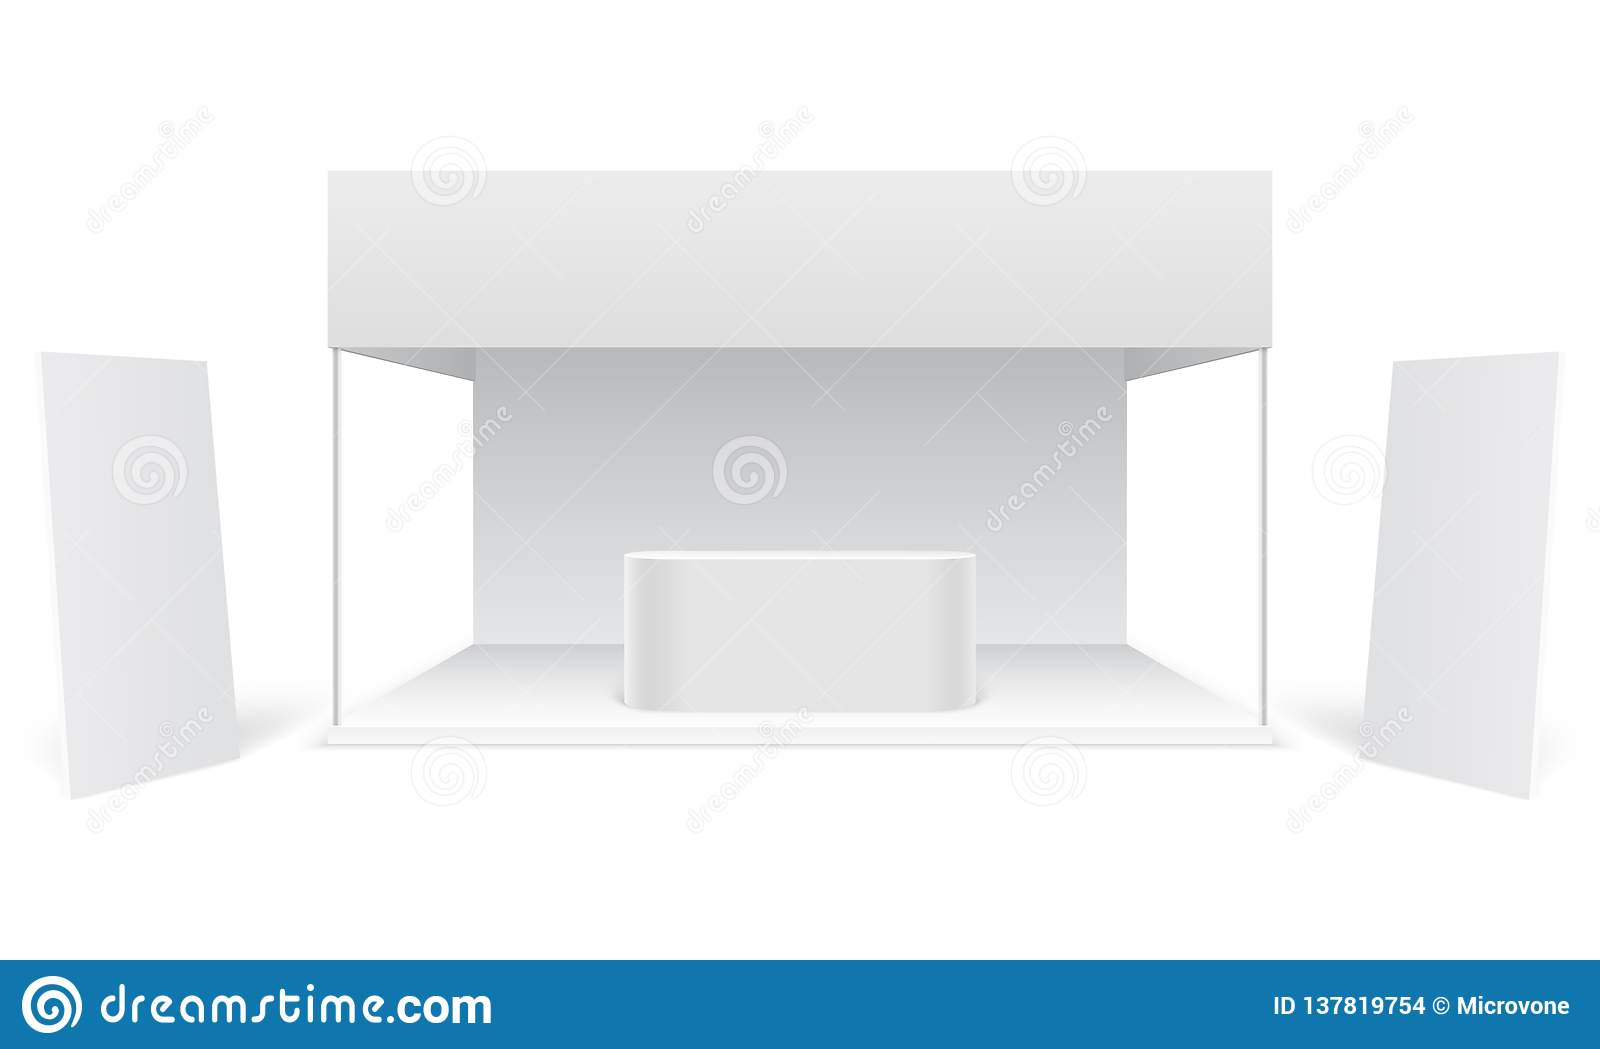 Exhibition Stall Icon : Event exhibition trade stand white promotional advertising booth